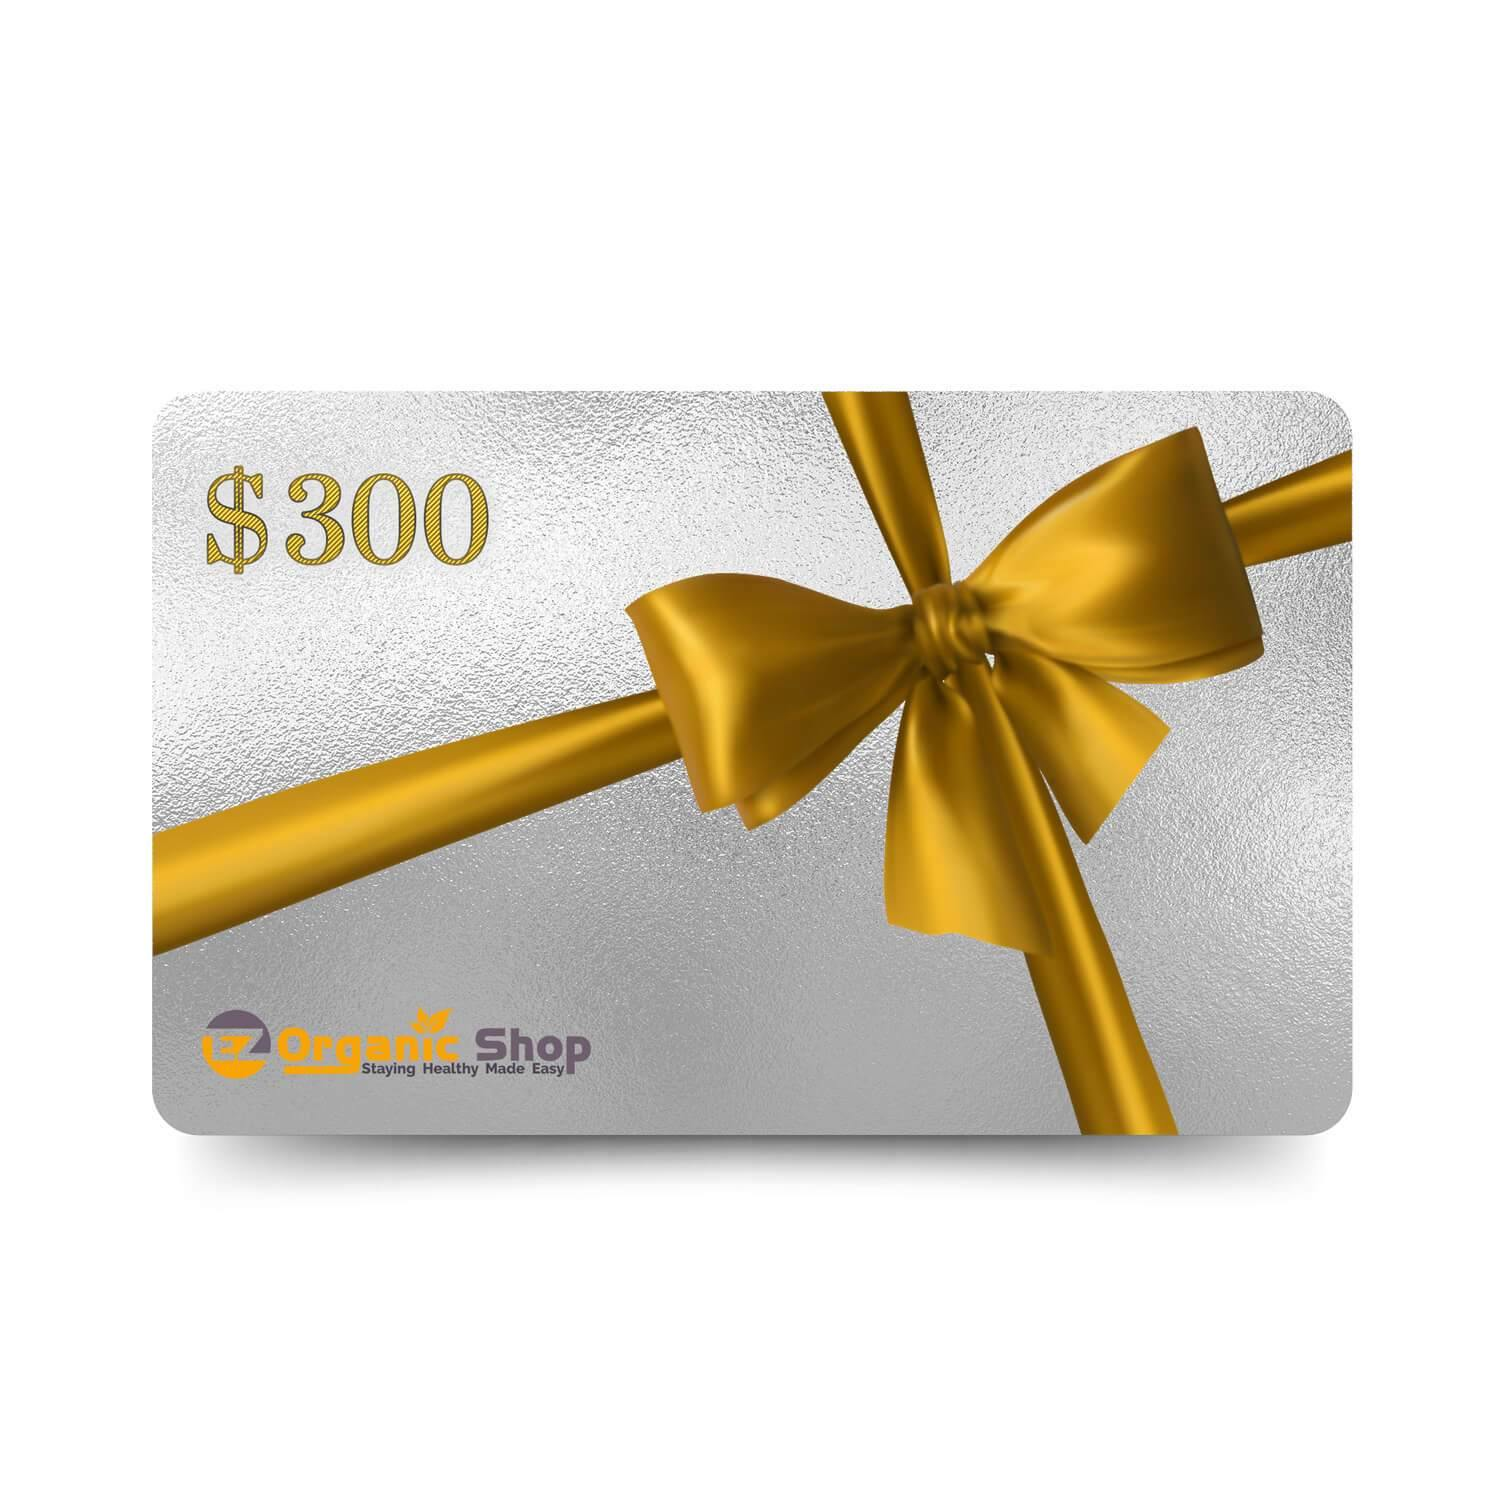 EZ Organic Shop $300 Gift Card - EZ Organic Shop